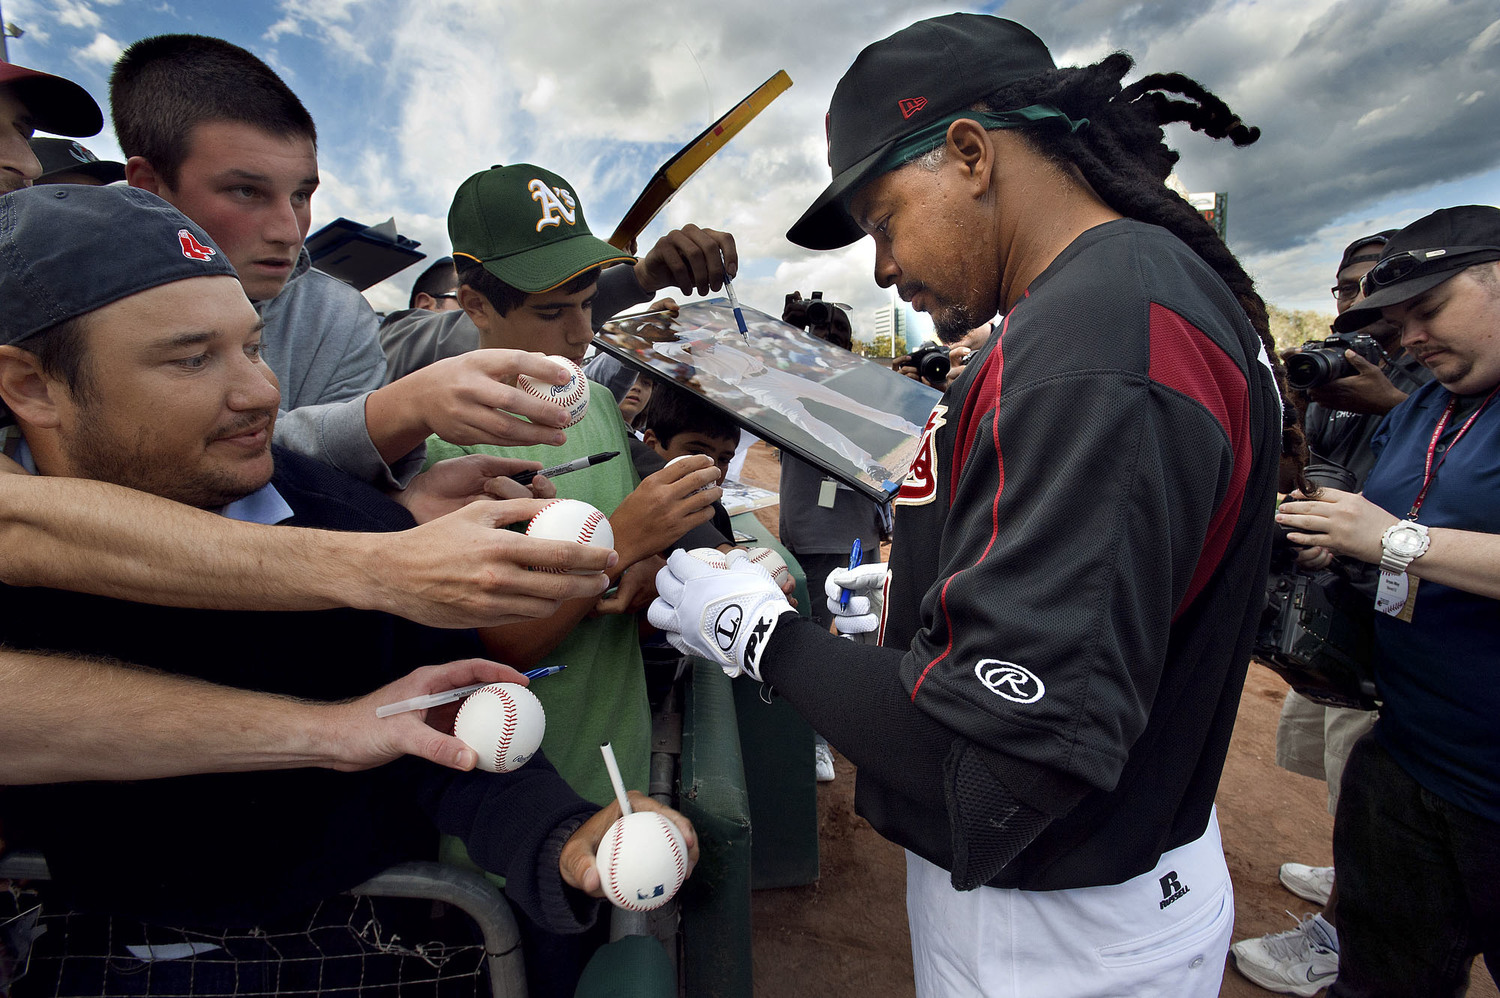 The River Cats' left fielder Manny Ramirez (11) signs autographs briefly  prior to the game between the Sacramento River Cats and the Reno Aces at Raley Field in West Sacramento on Friday, May 25, 2012.